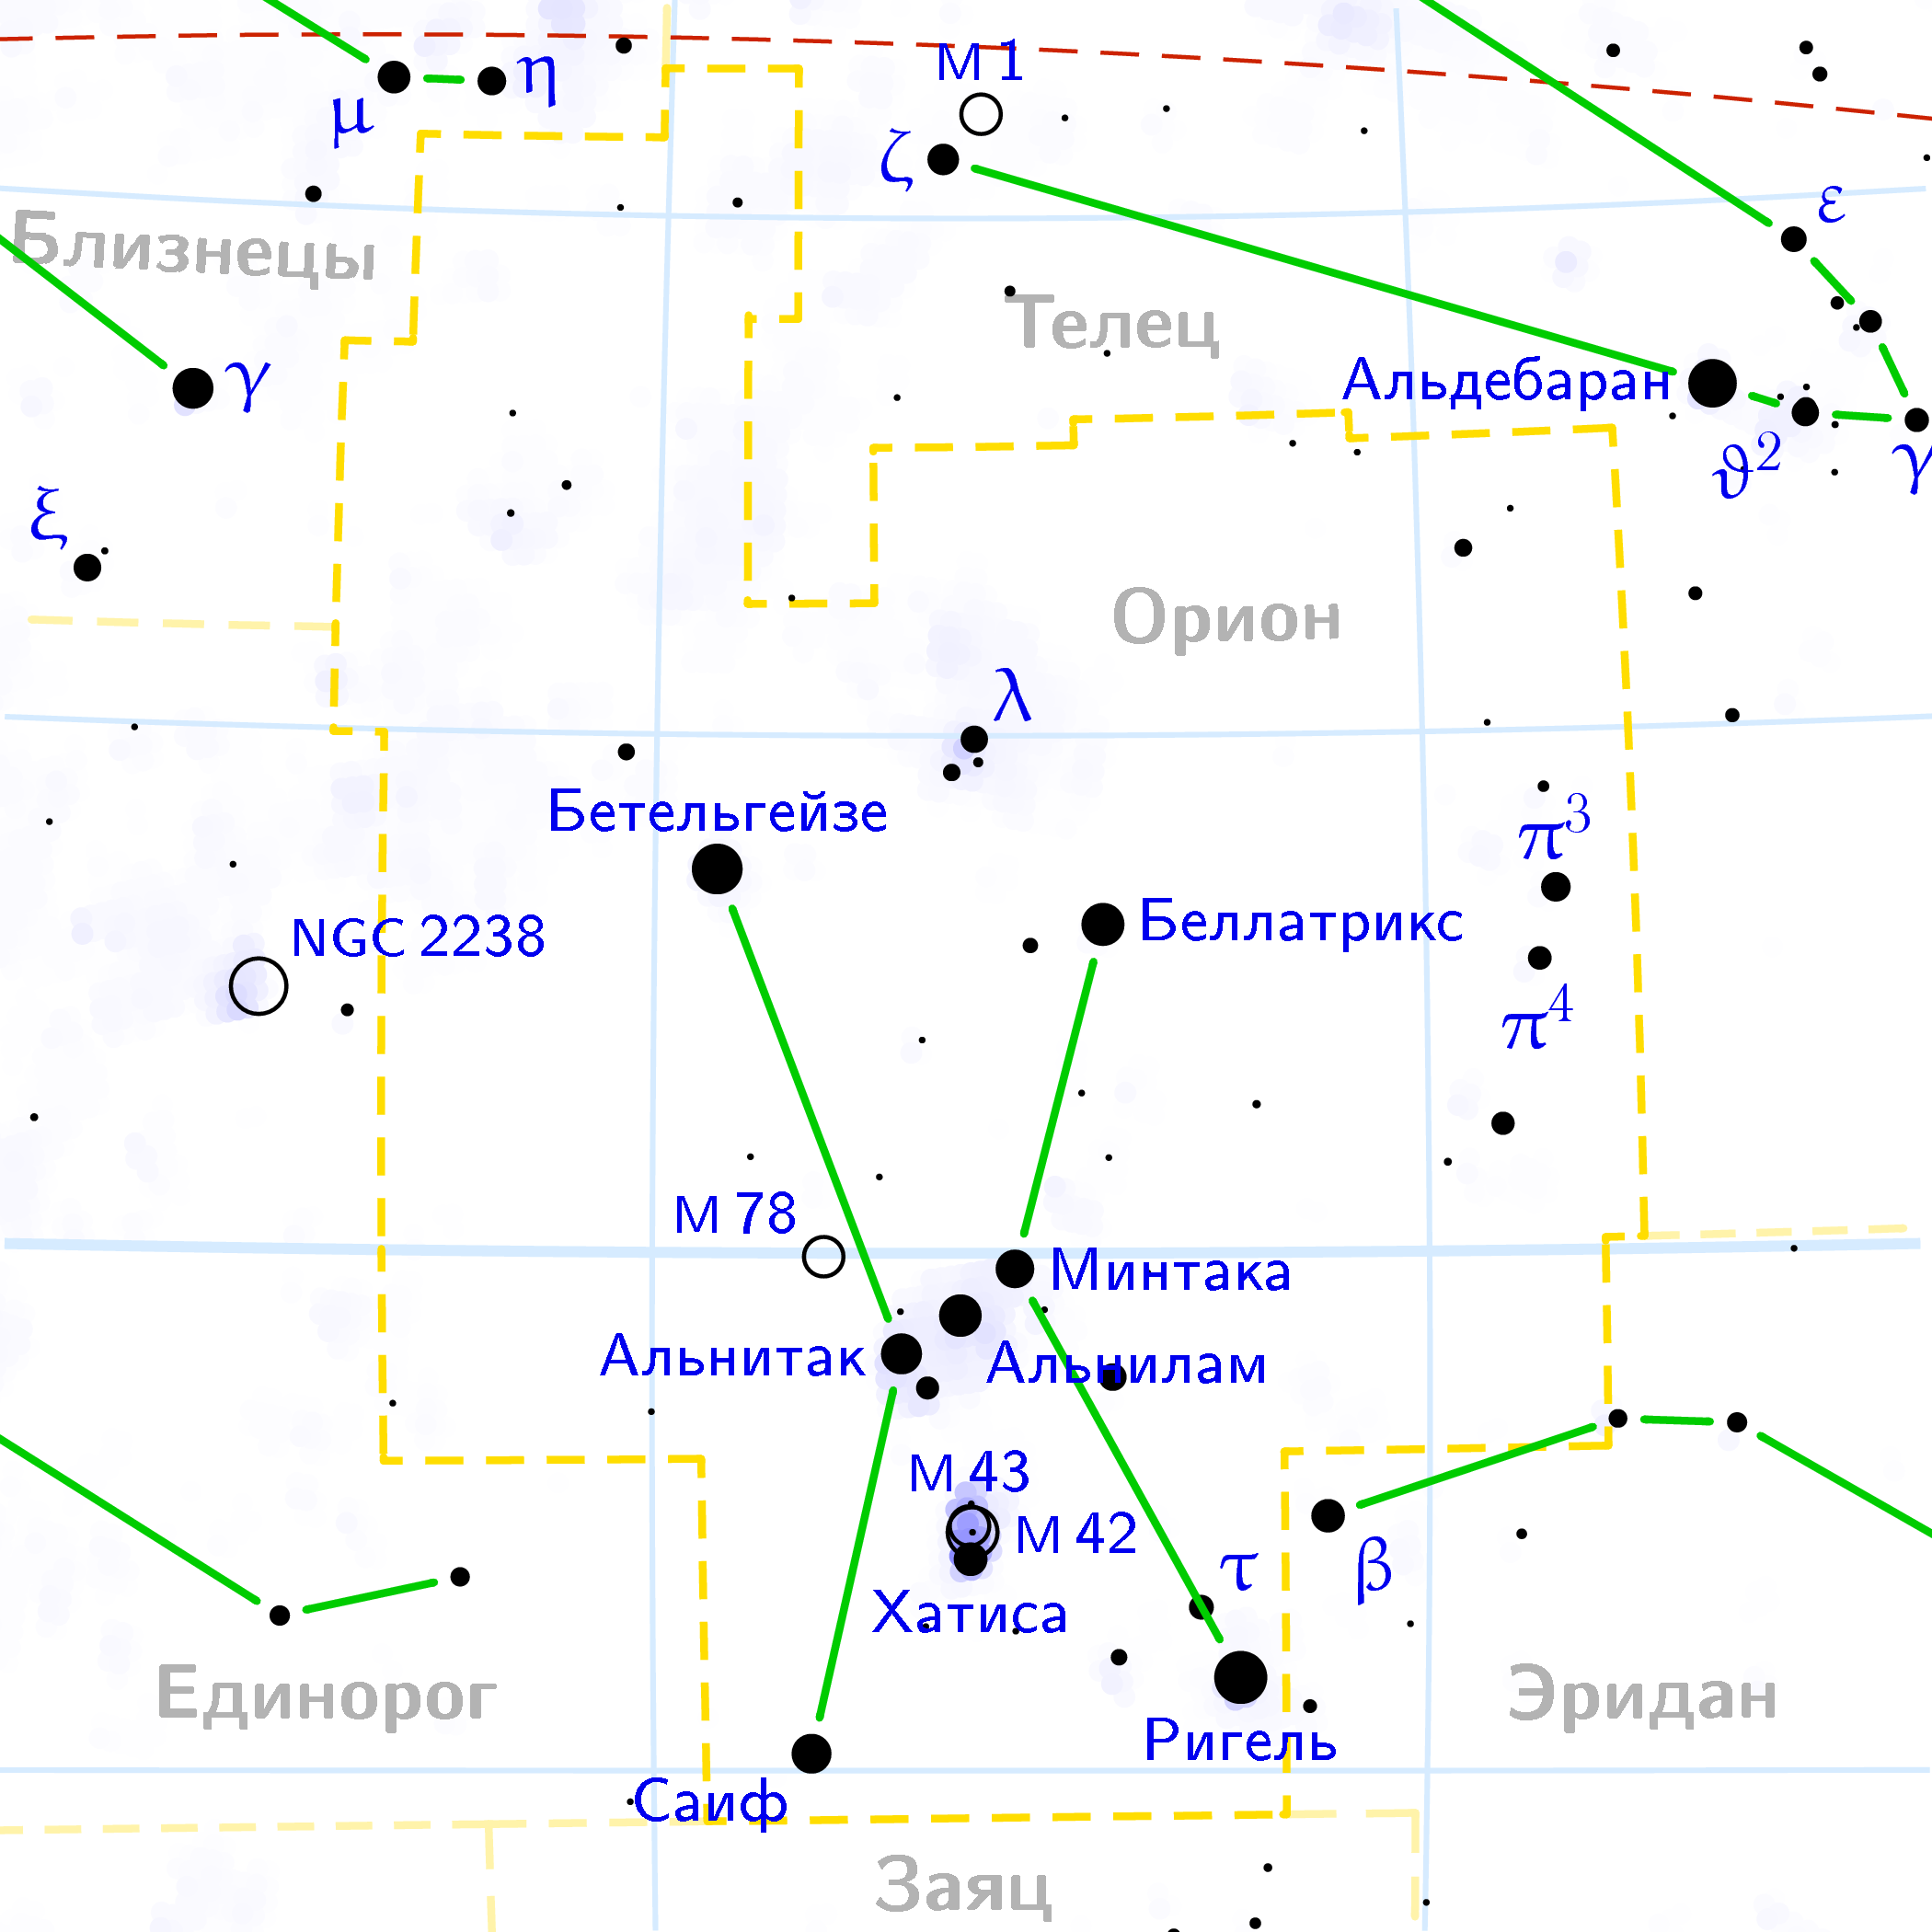 http://upload.wikimedia.org/wikipedia/commons/2/2d/Orion_constellation_map_ru_lite.png